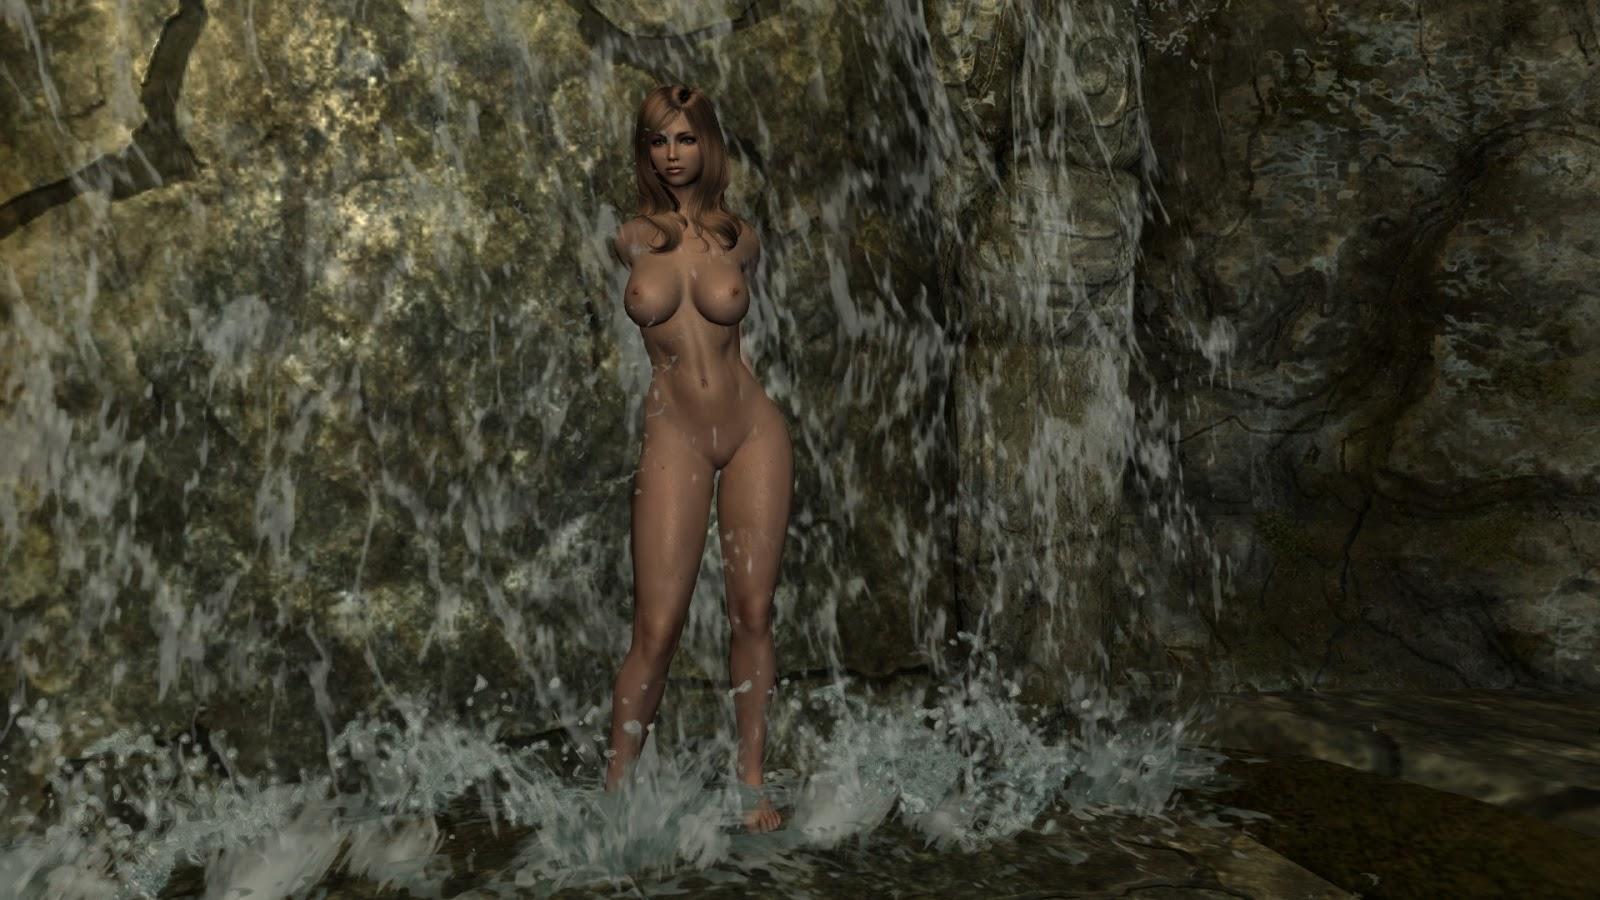 Skyrim nude models exploited videos